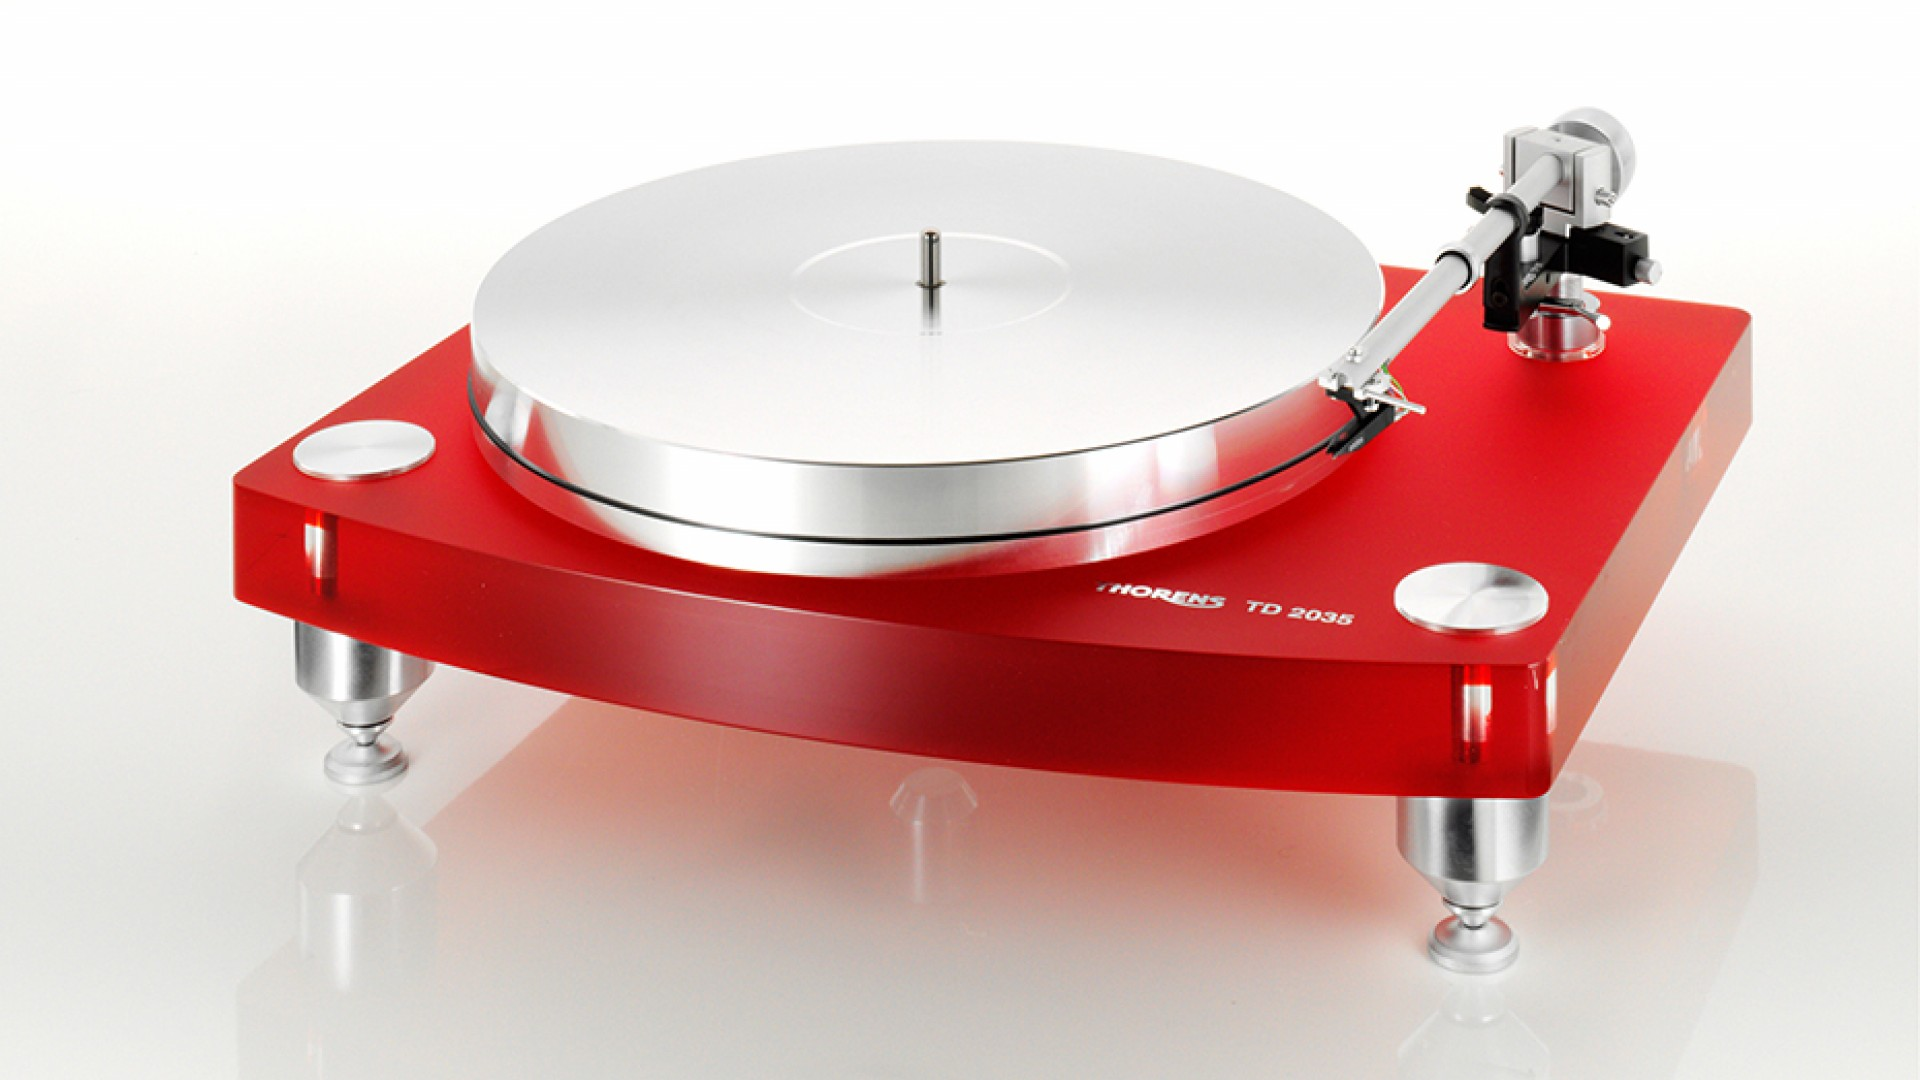 "THORENS TD 2015, £1,849, <a href=""http://www.hifigear.co.uk/thorens-td-2015-belt-drive-turntable.html"" target=""_blank"">HIFIGEAR.CO.UK</a>"